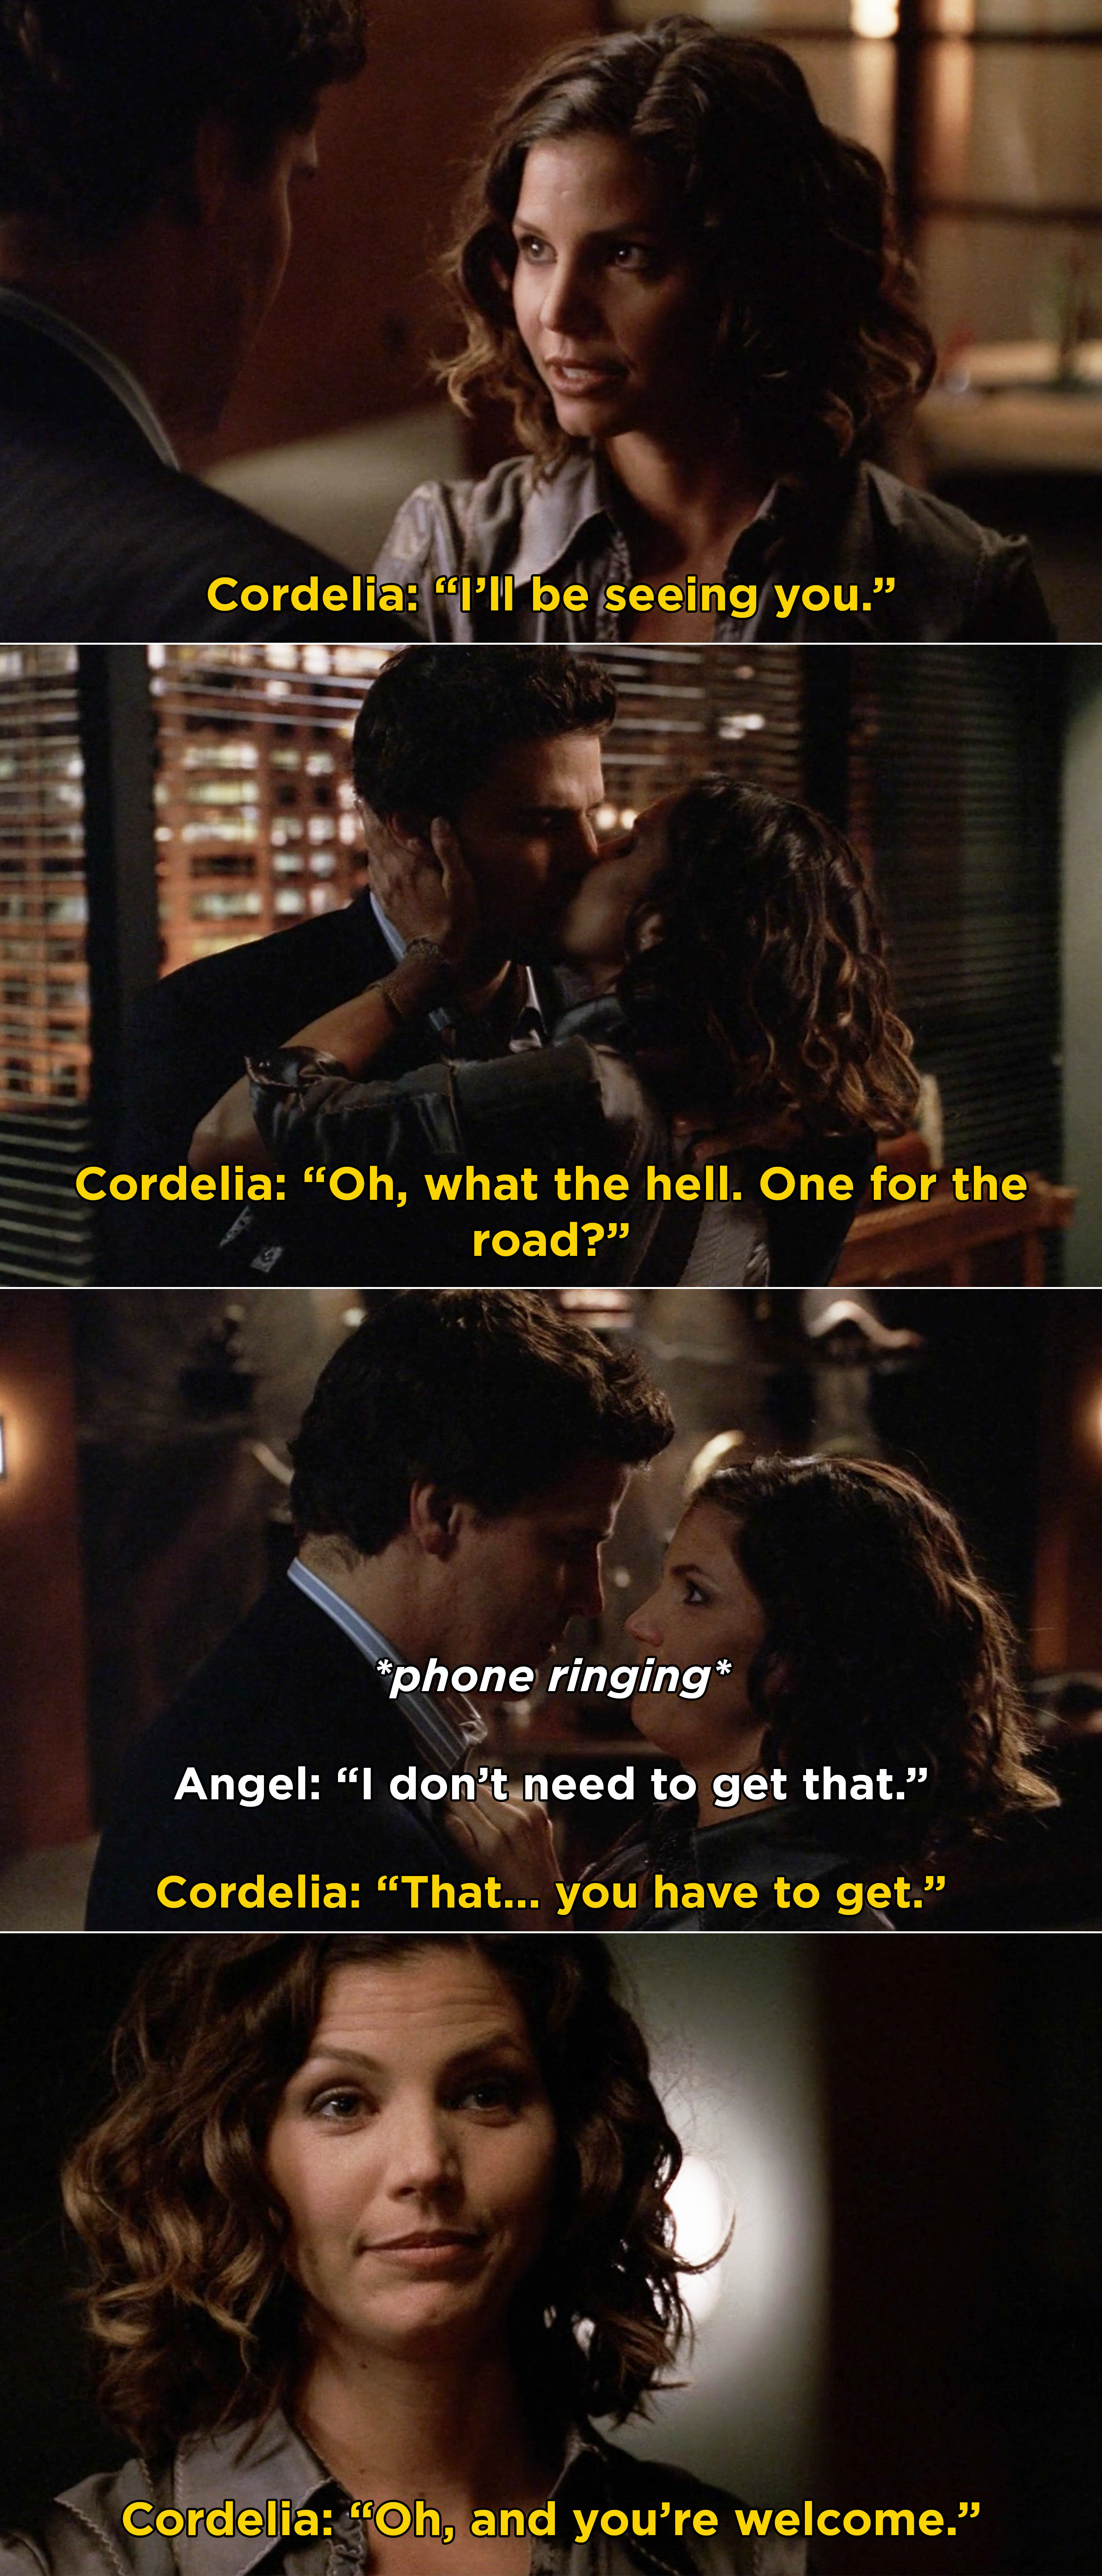 Cordelia and Angel sharing a final kiss before Cordelia has him answer the phone